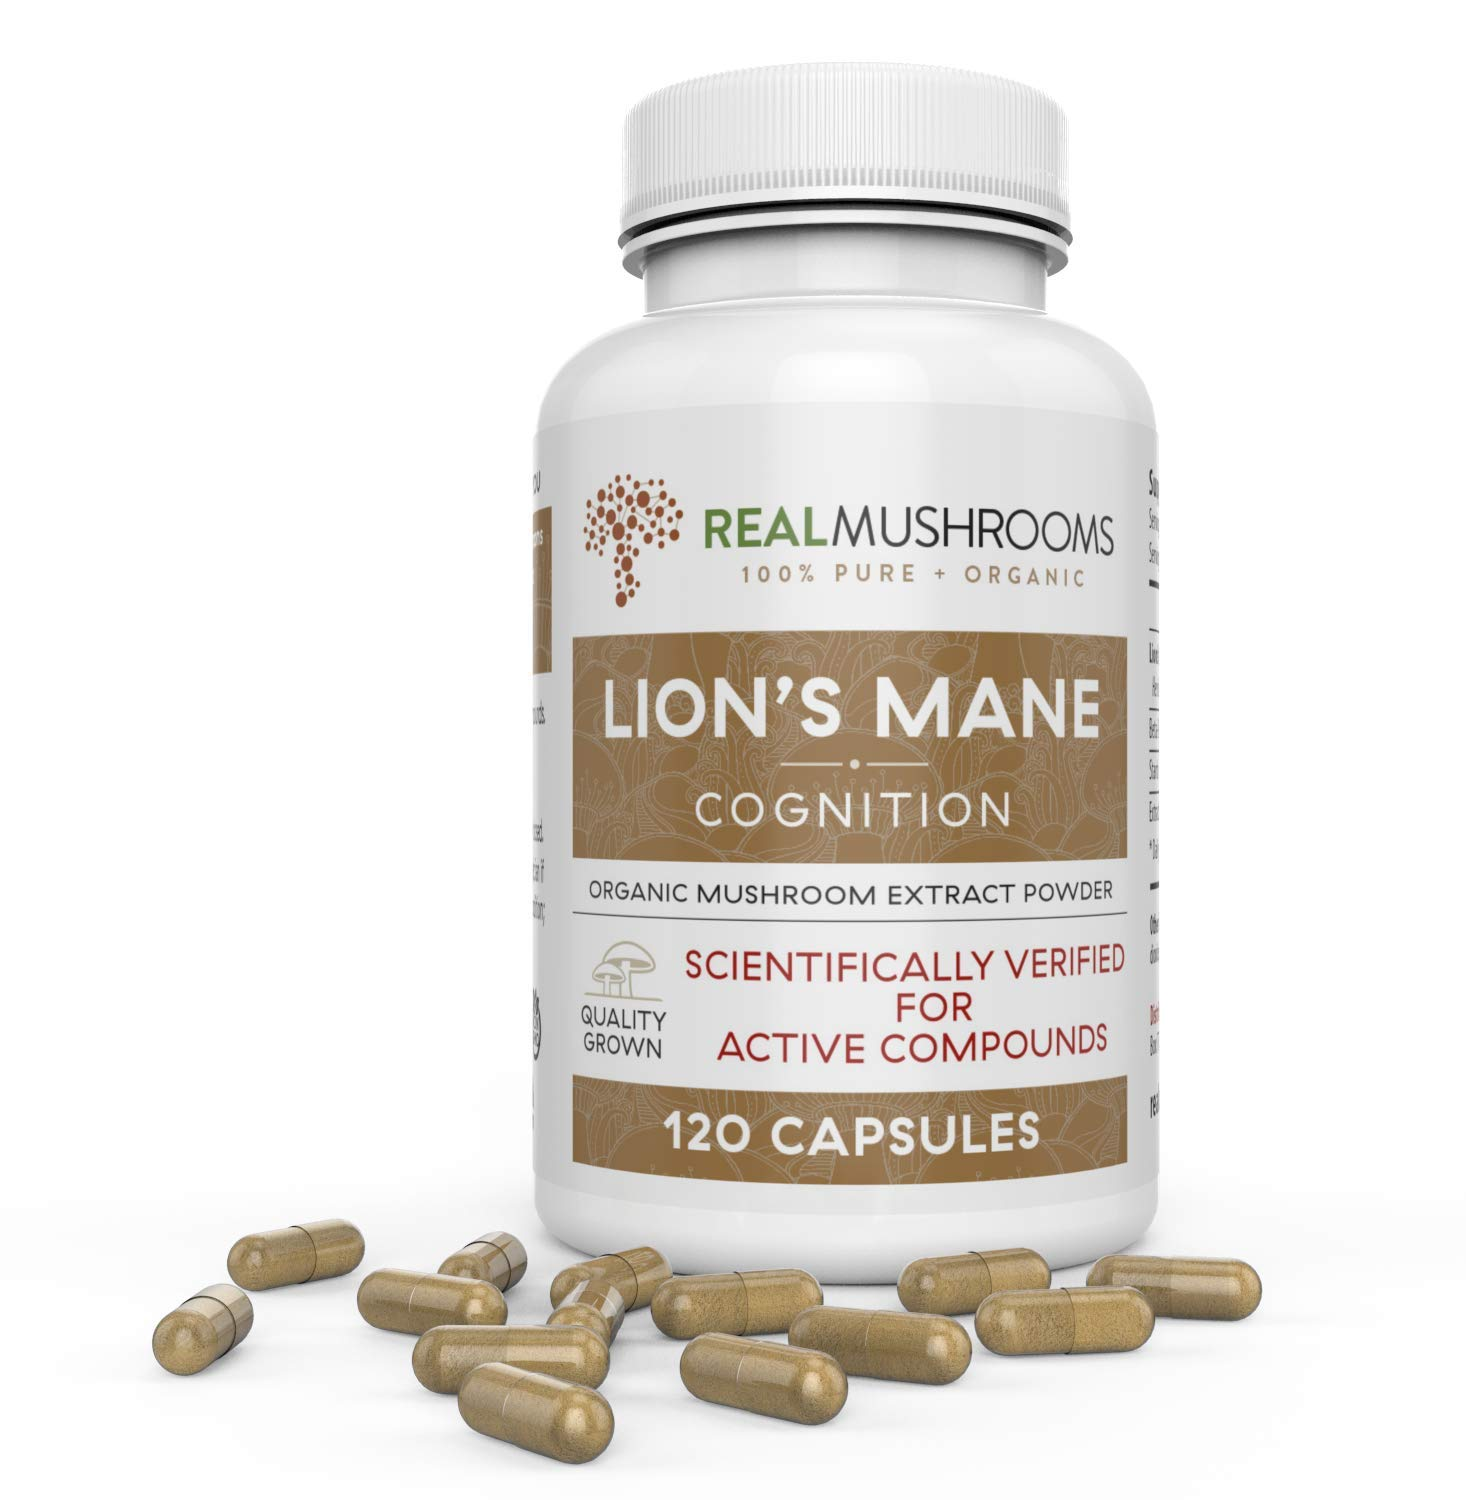 Organic Lions Mane Mushroom Capsules by Real Mushrooms - 120 Capsules of Extract Powder, White